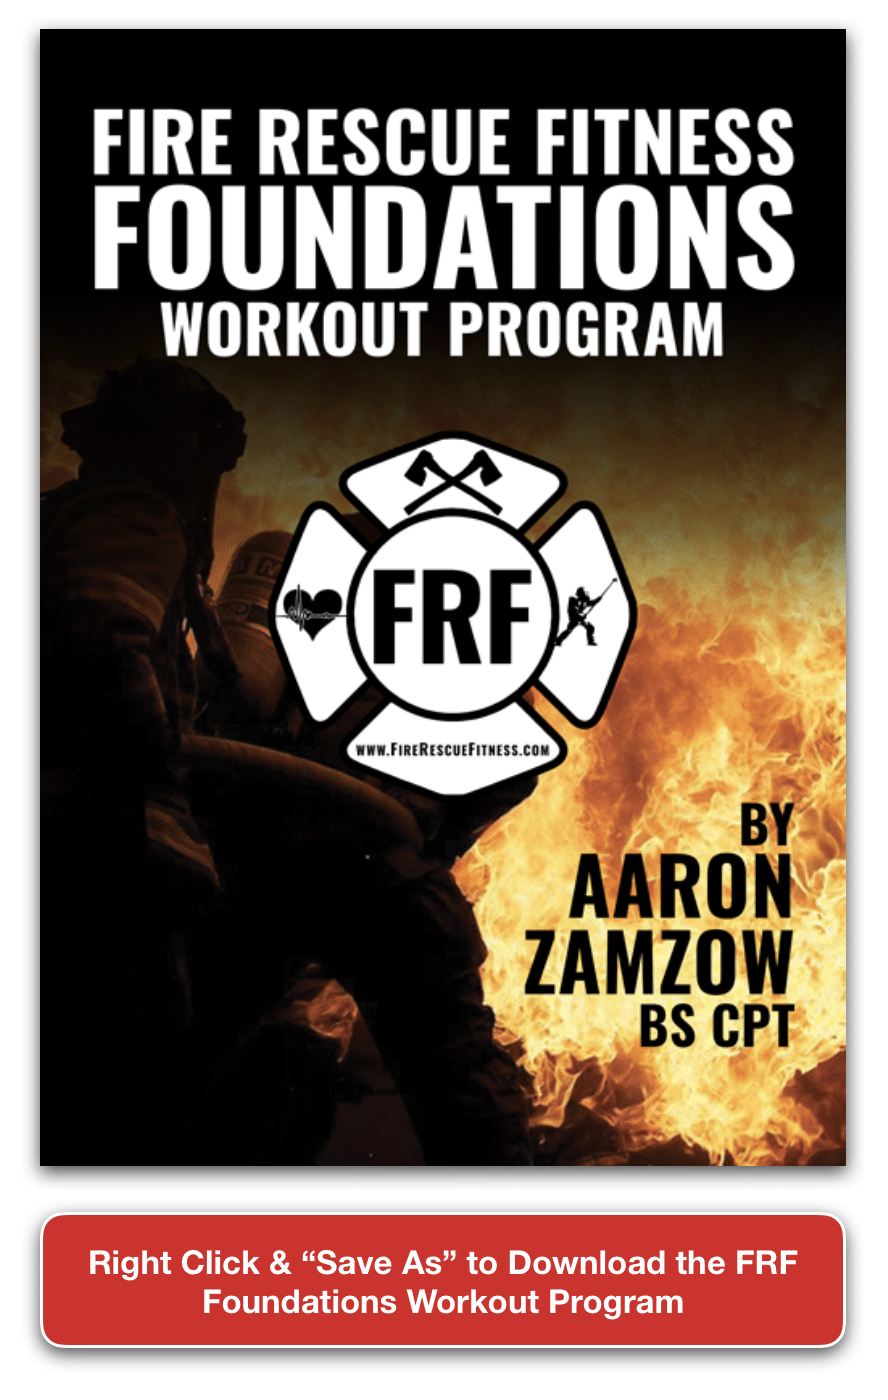 frf foundations workout save as button